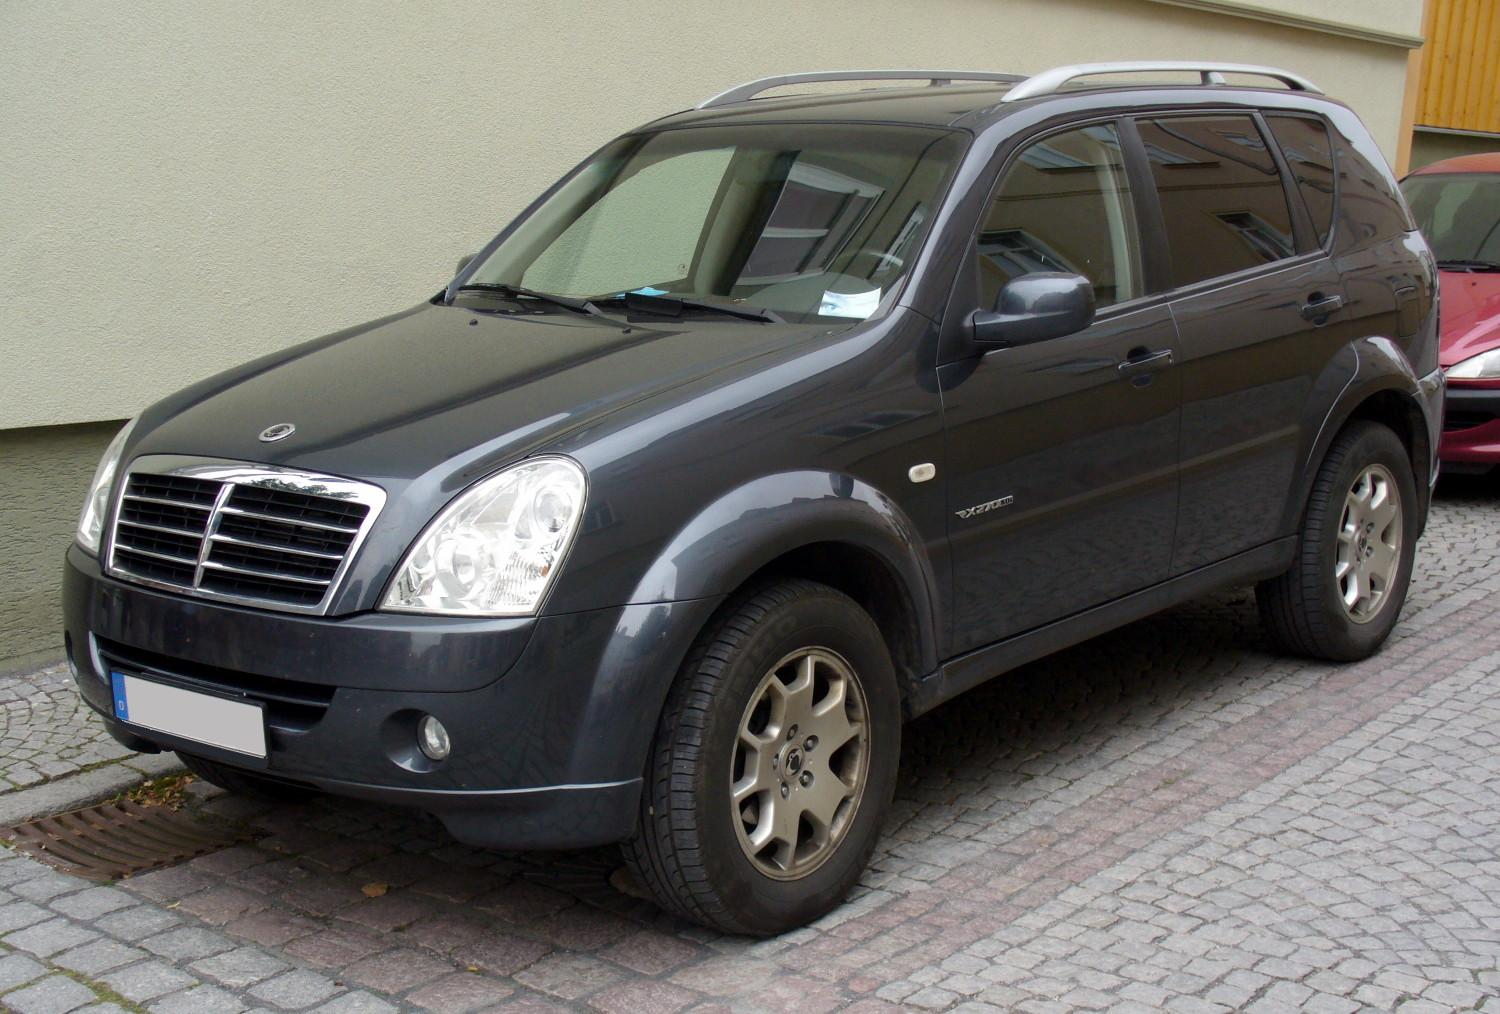 2005 Ssangyong Actyon #12